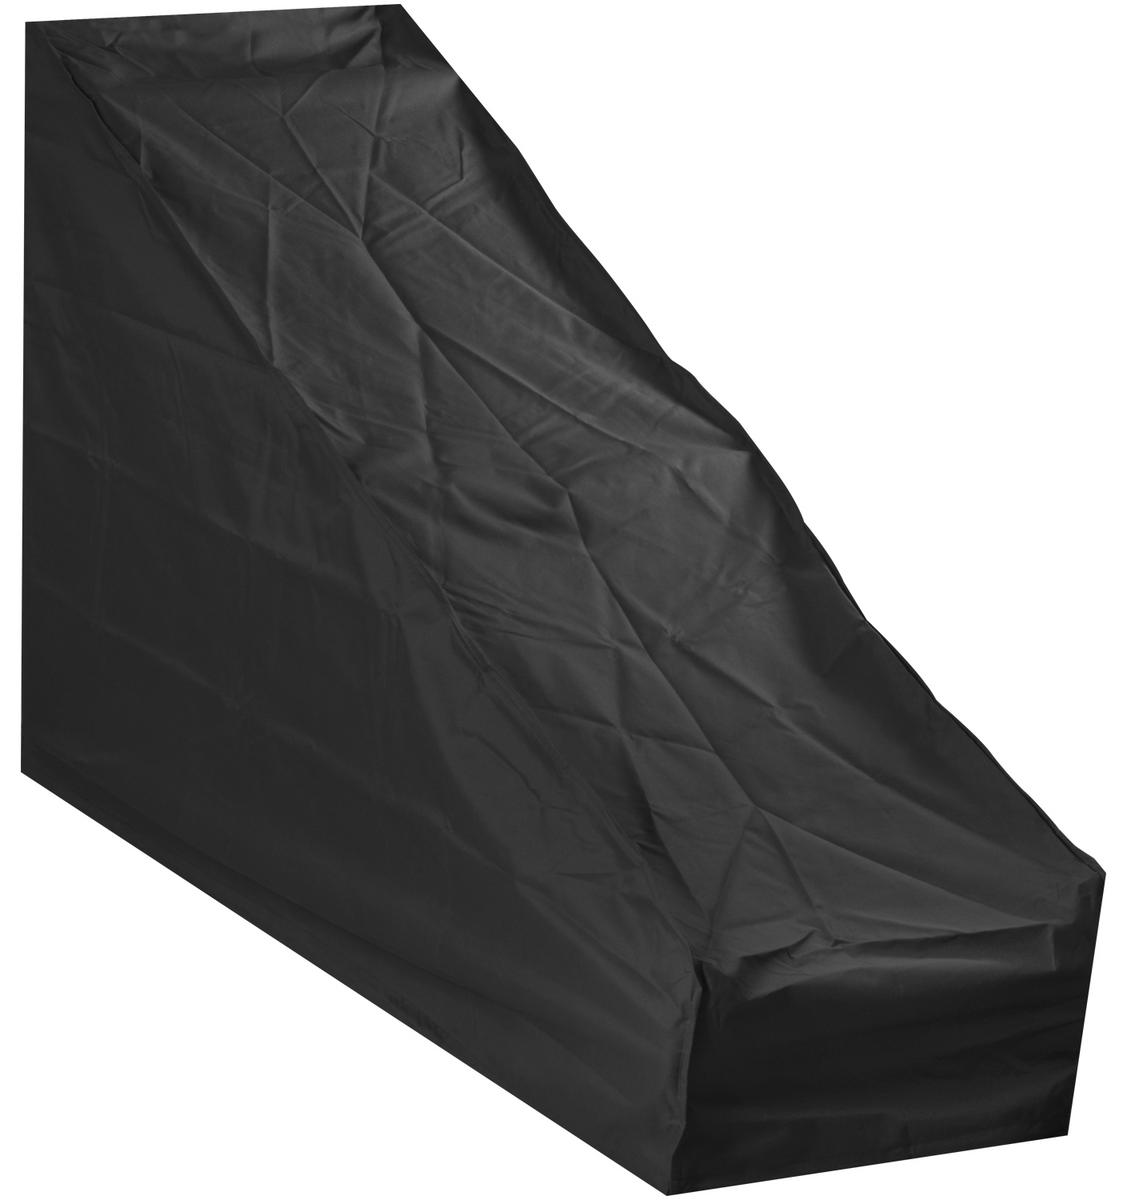 Woodside Large Protective Lawn Mower Cover BLACK